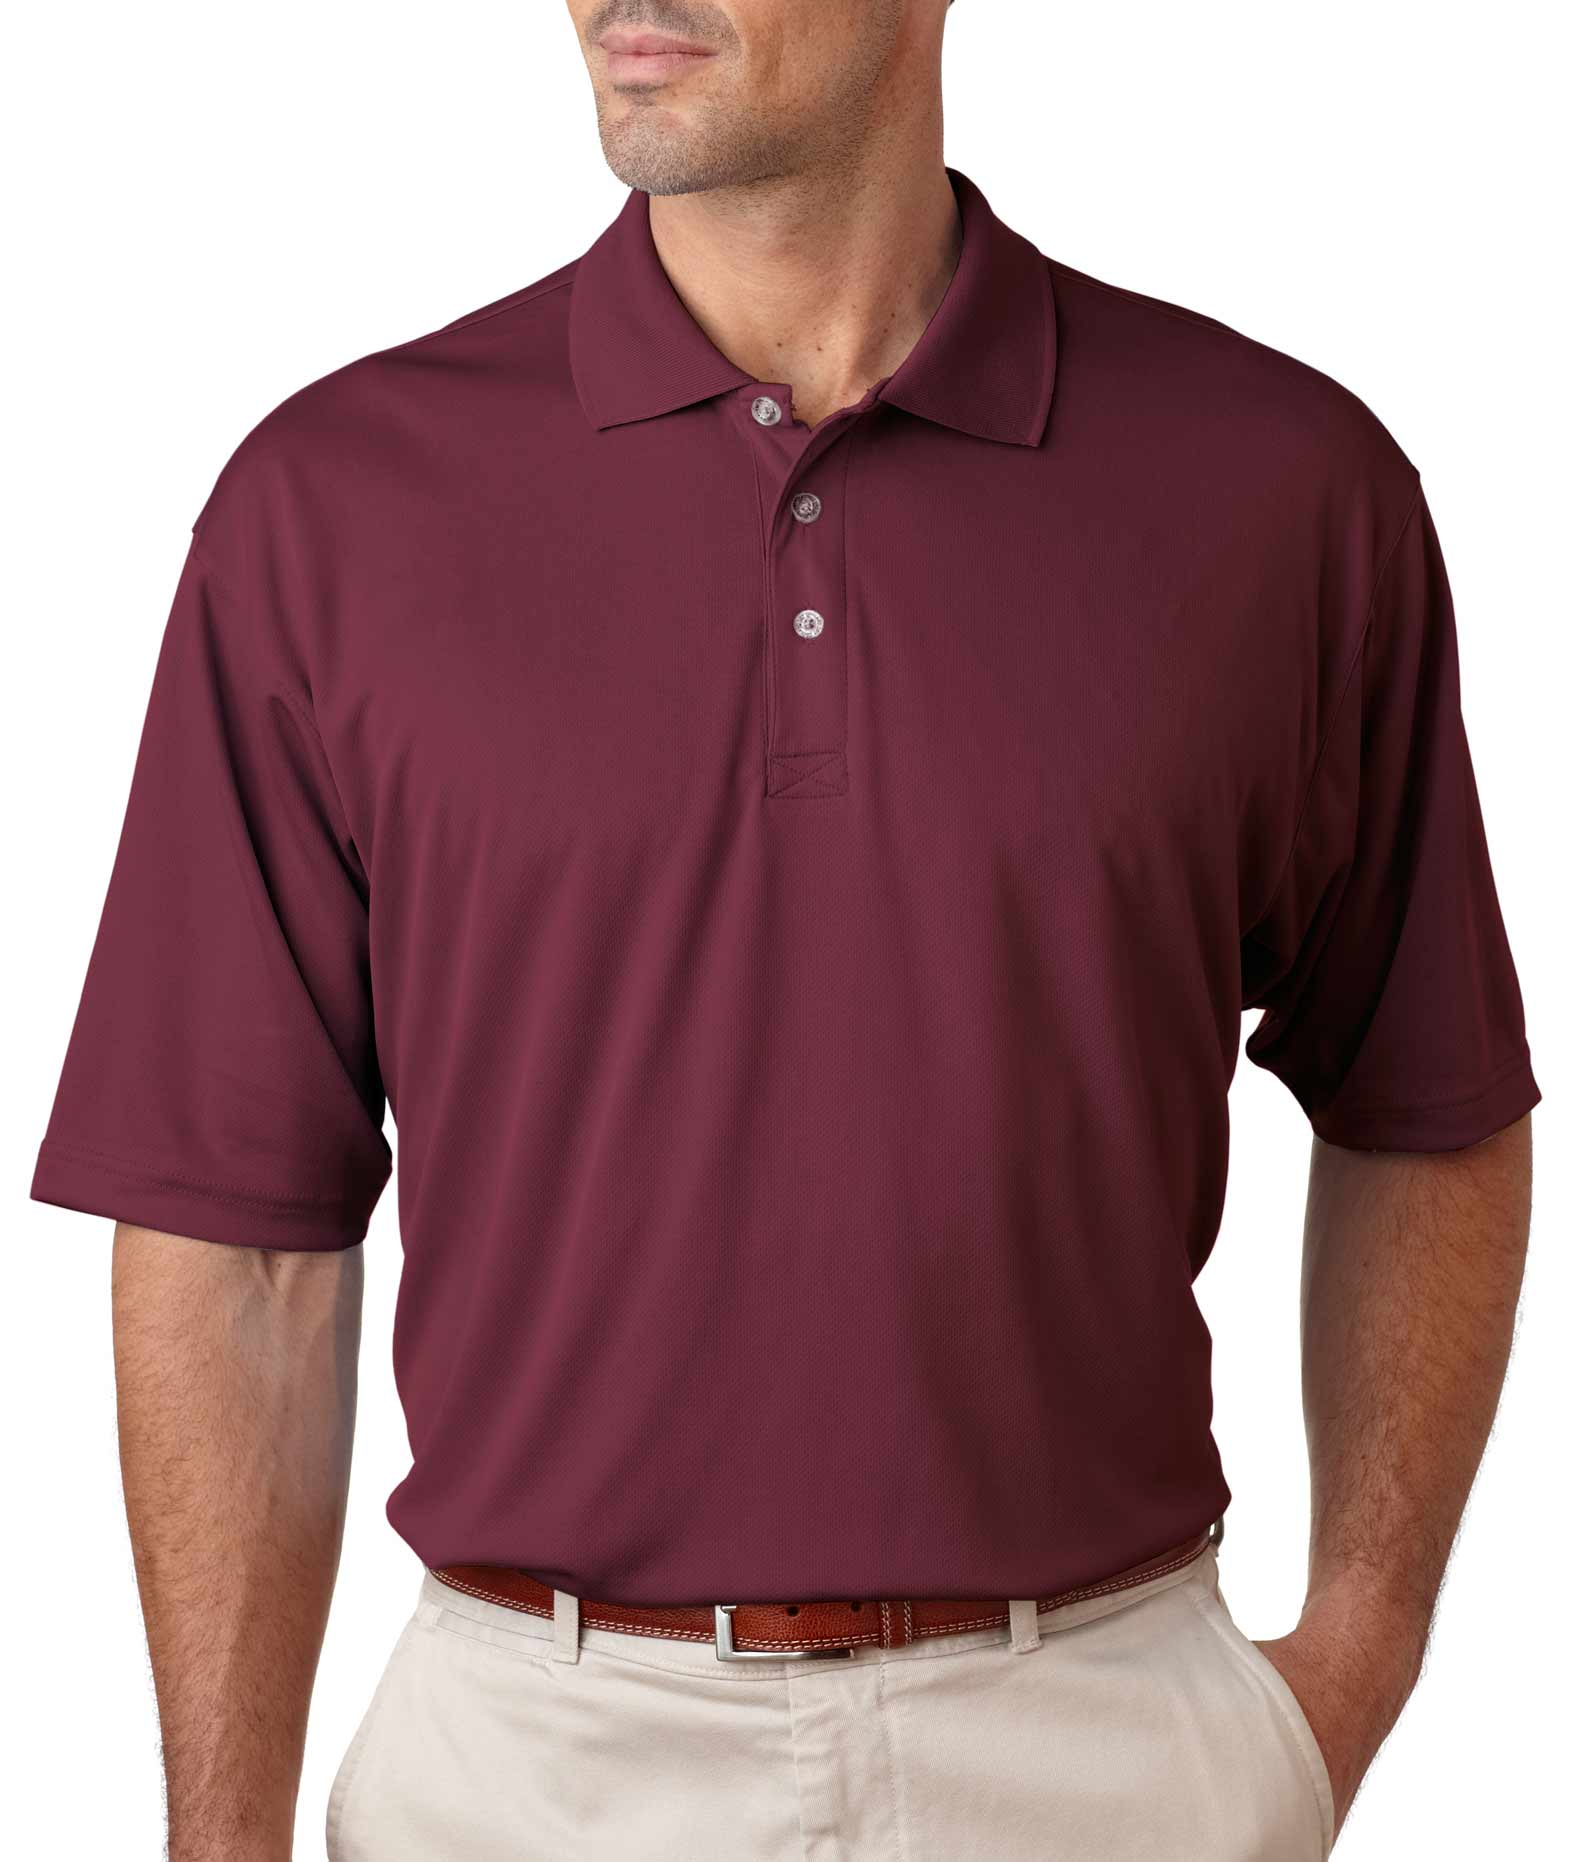 UltraClub Mens Cool & Dry Sport Polo